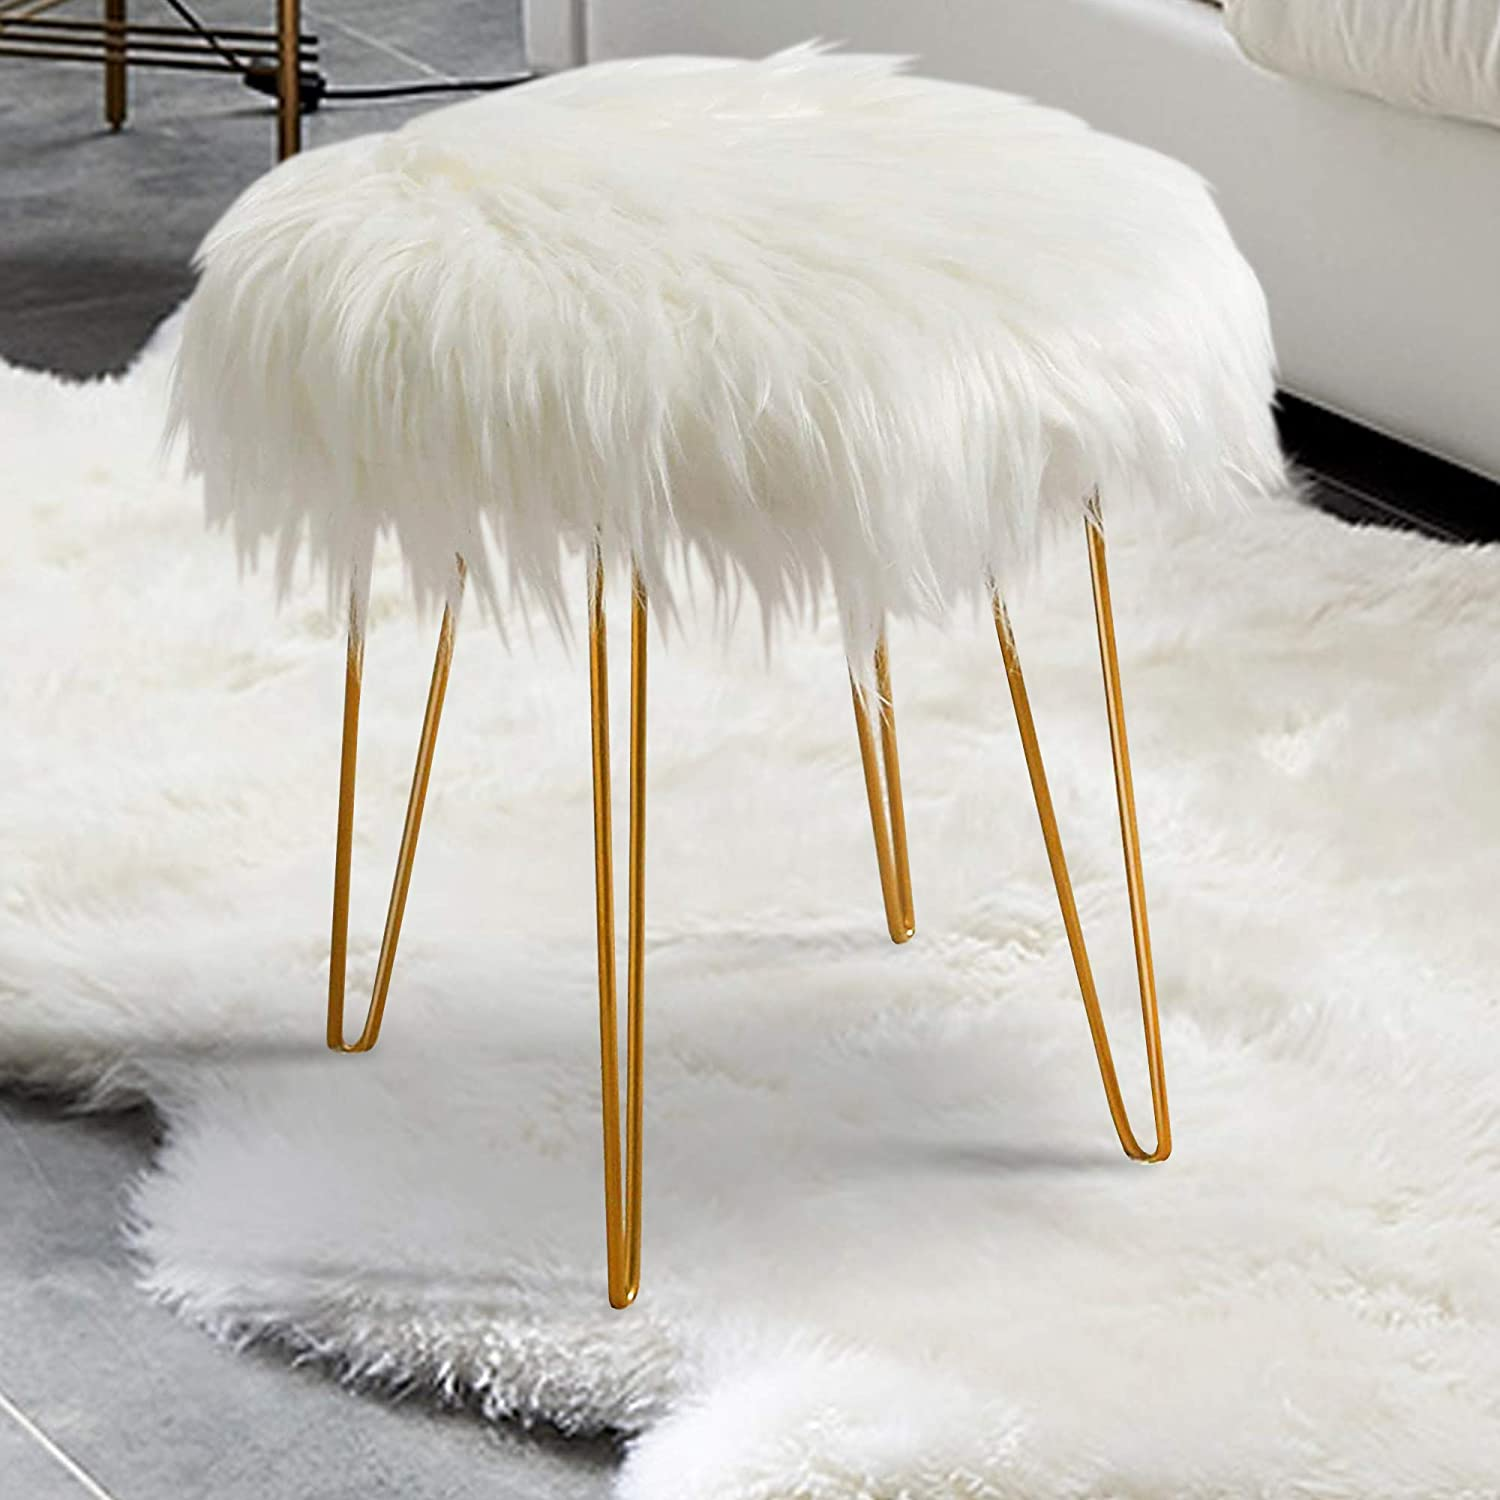 Footrest with Hair Pin Metal Legs for Living Room Furry Padded Ottoman Seat White Faux Fur Vanity Stool ottoman